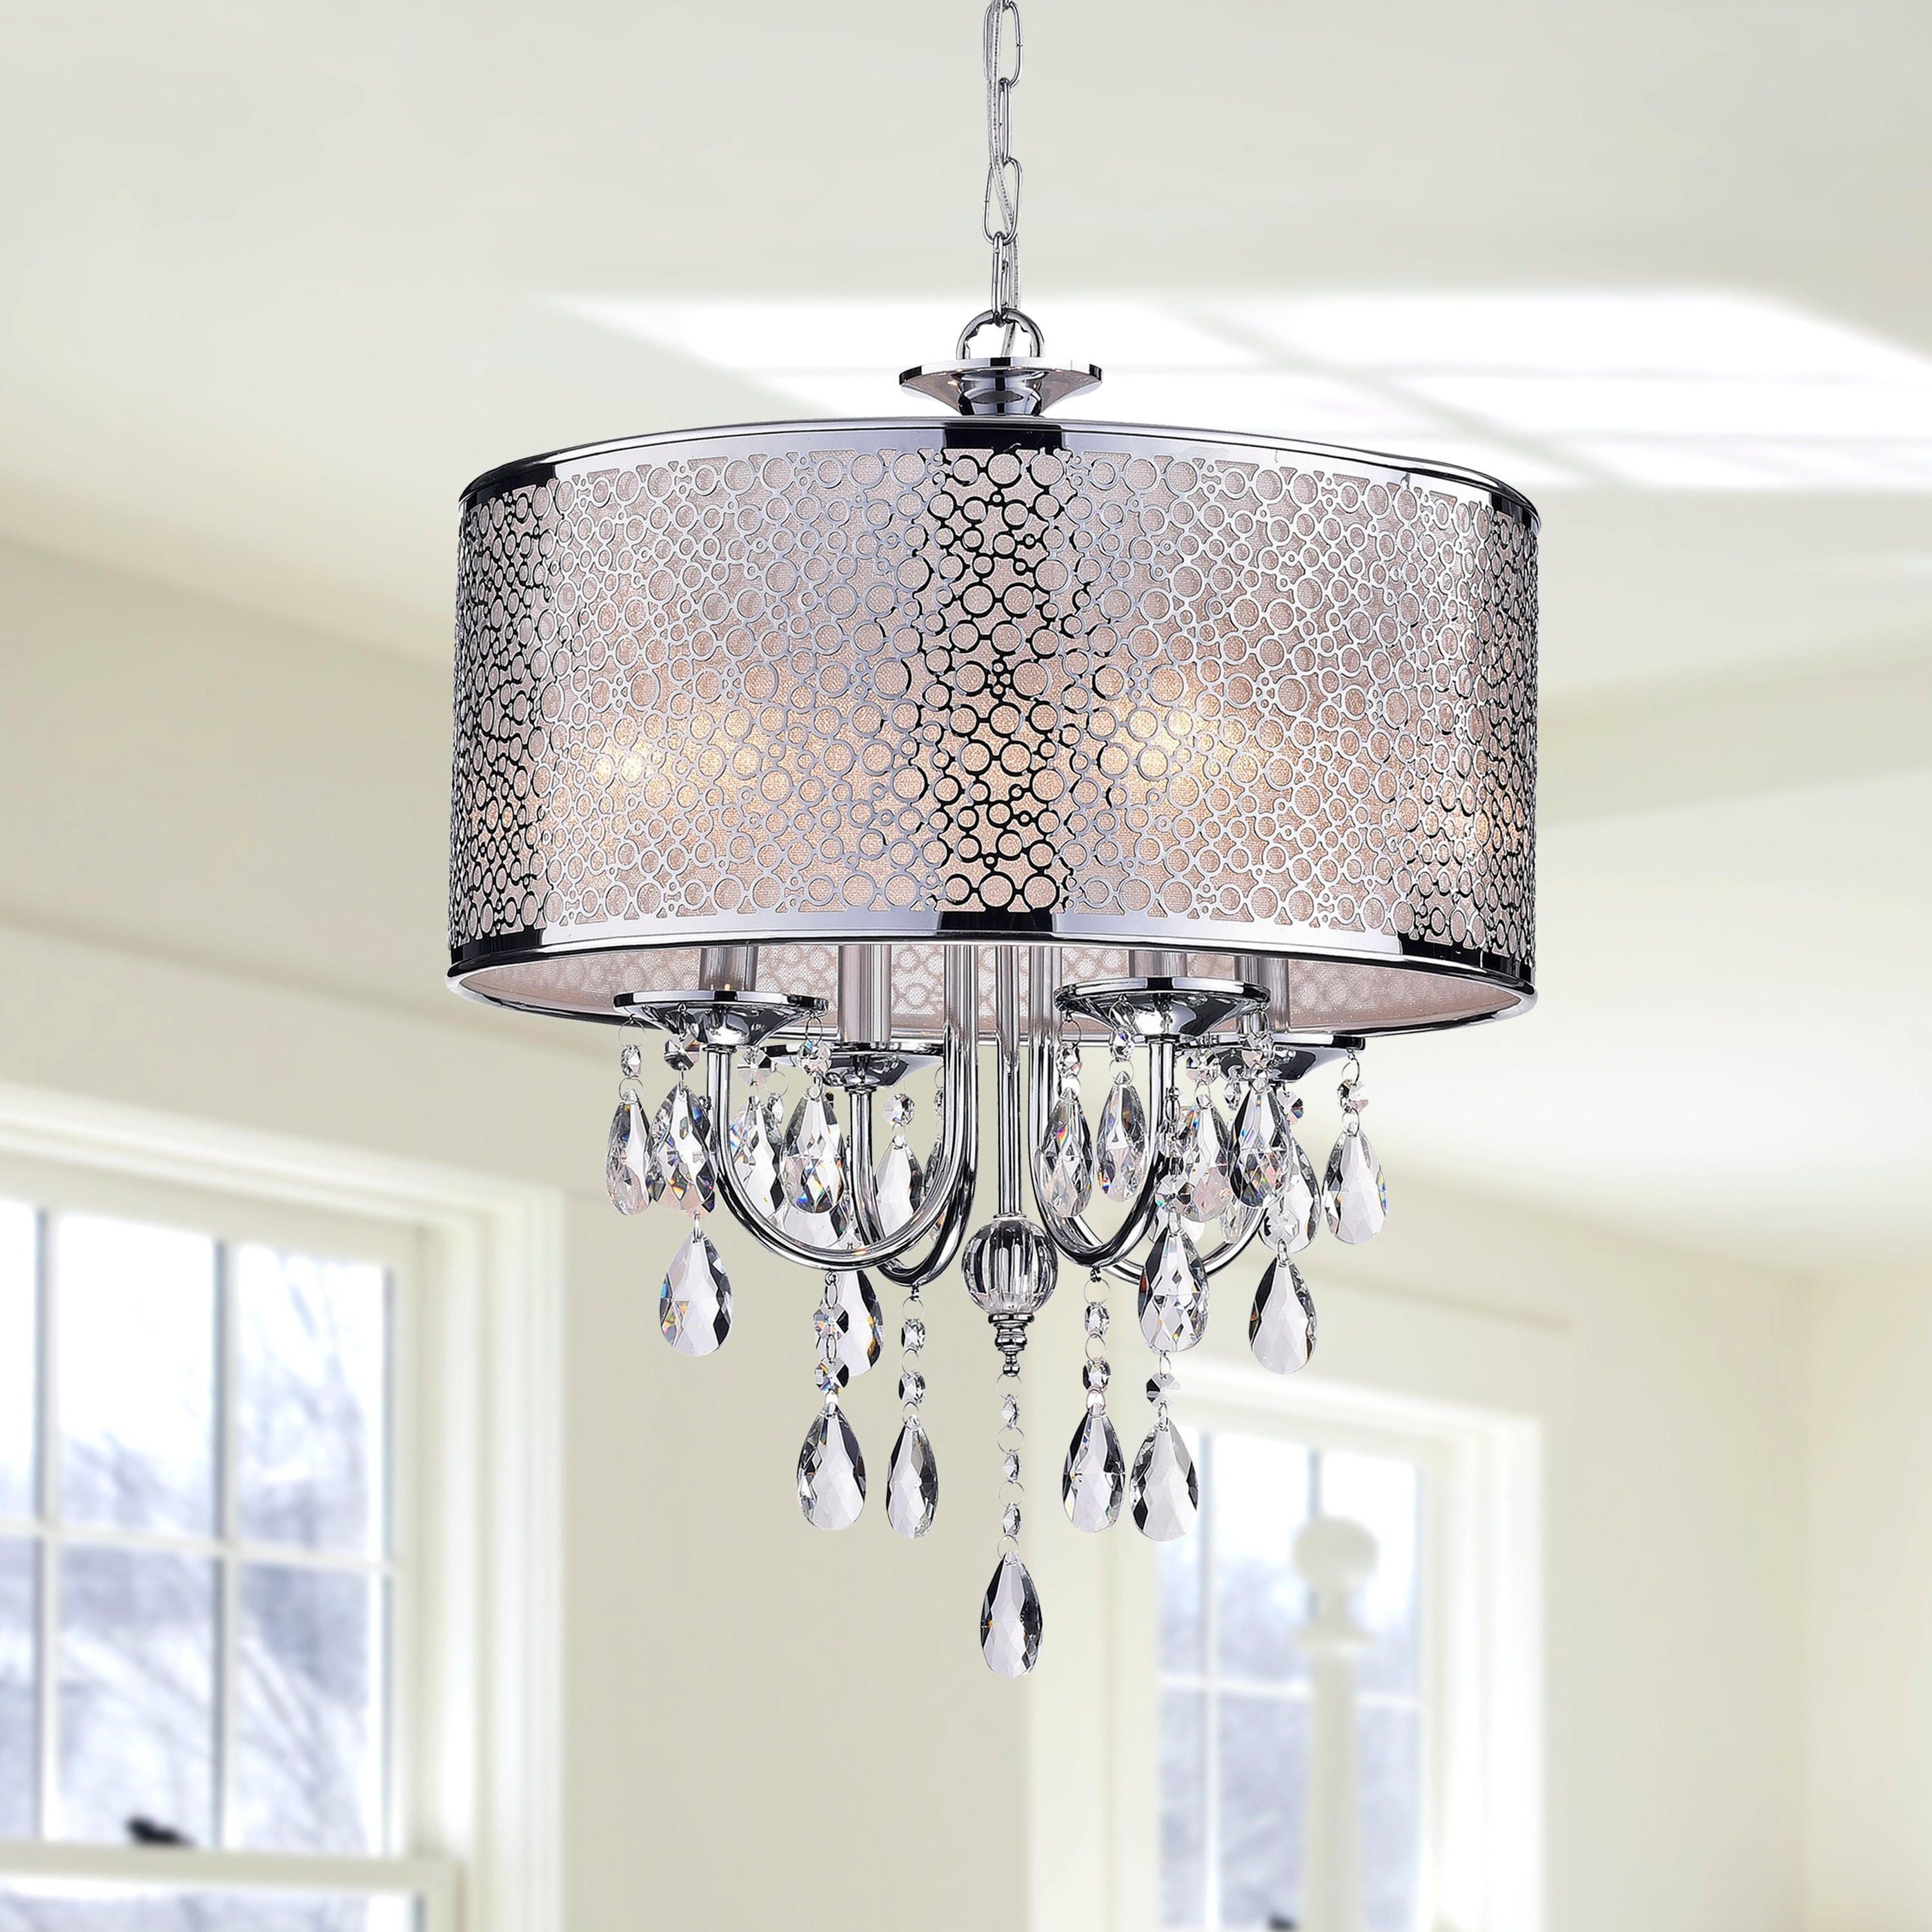 Crystal Chandelier Light Fixture Ceiling Pendant Modern Chrome ...